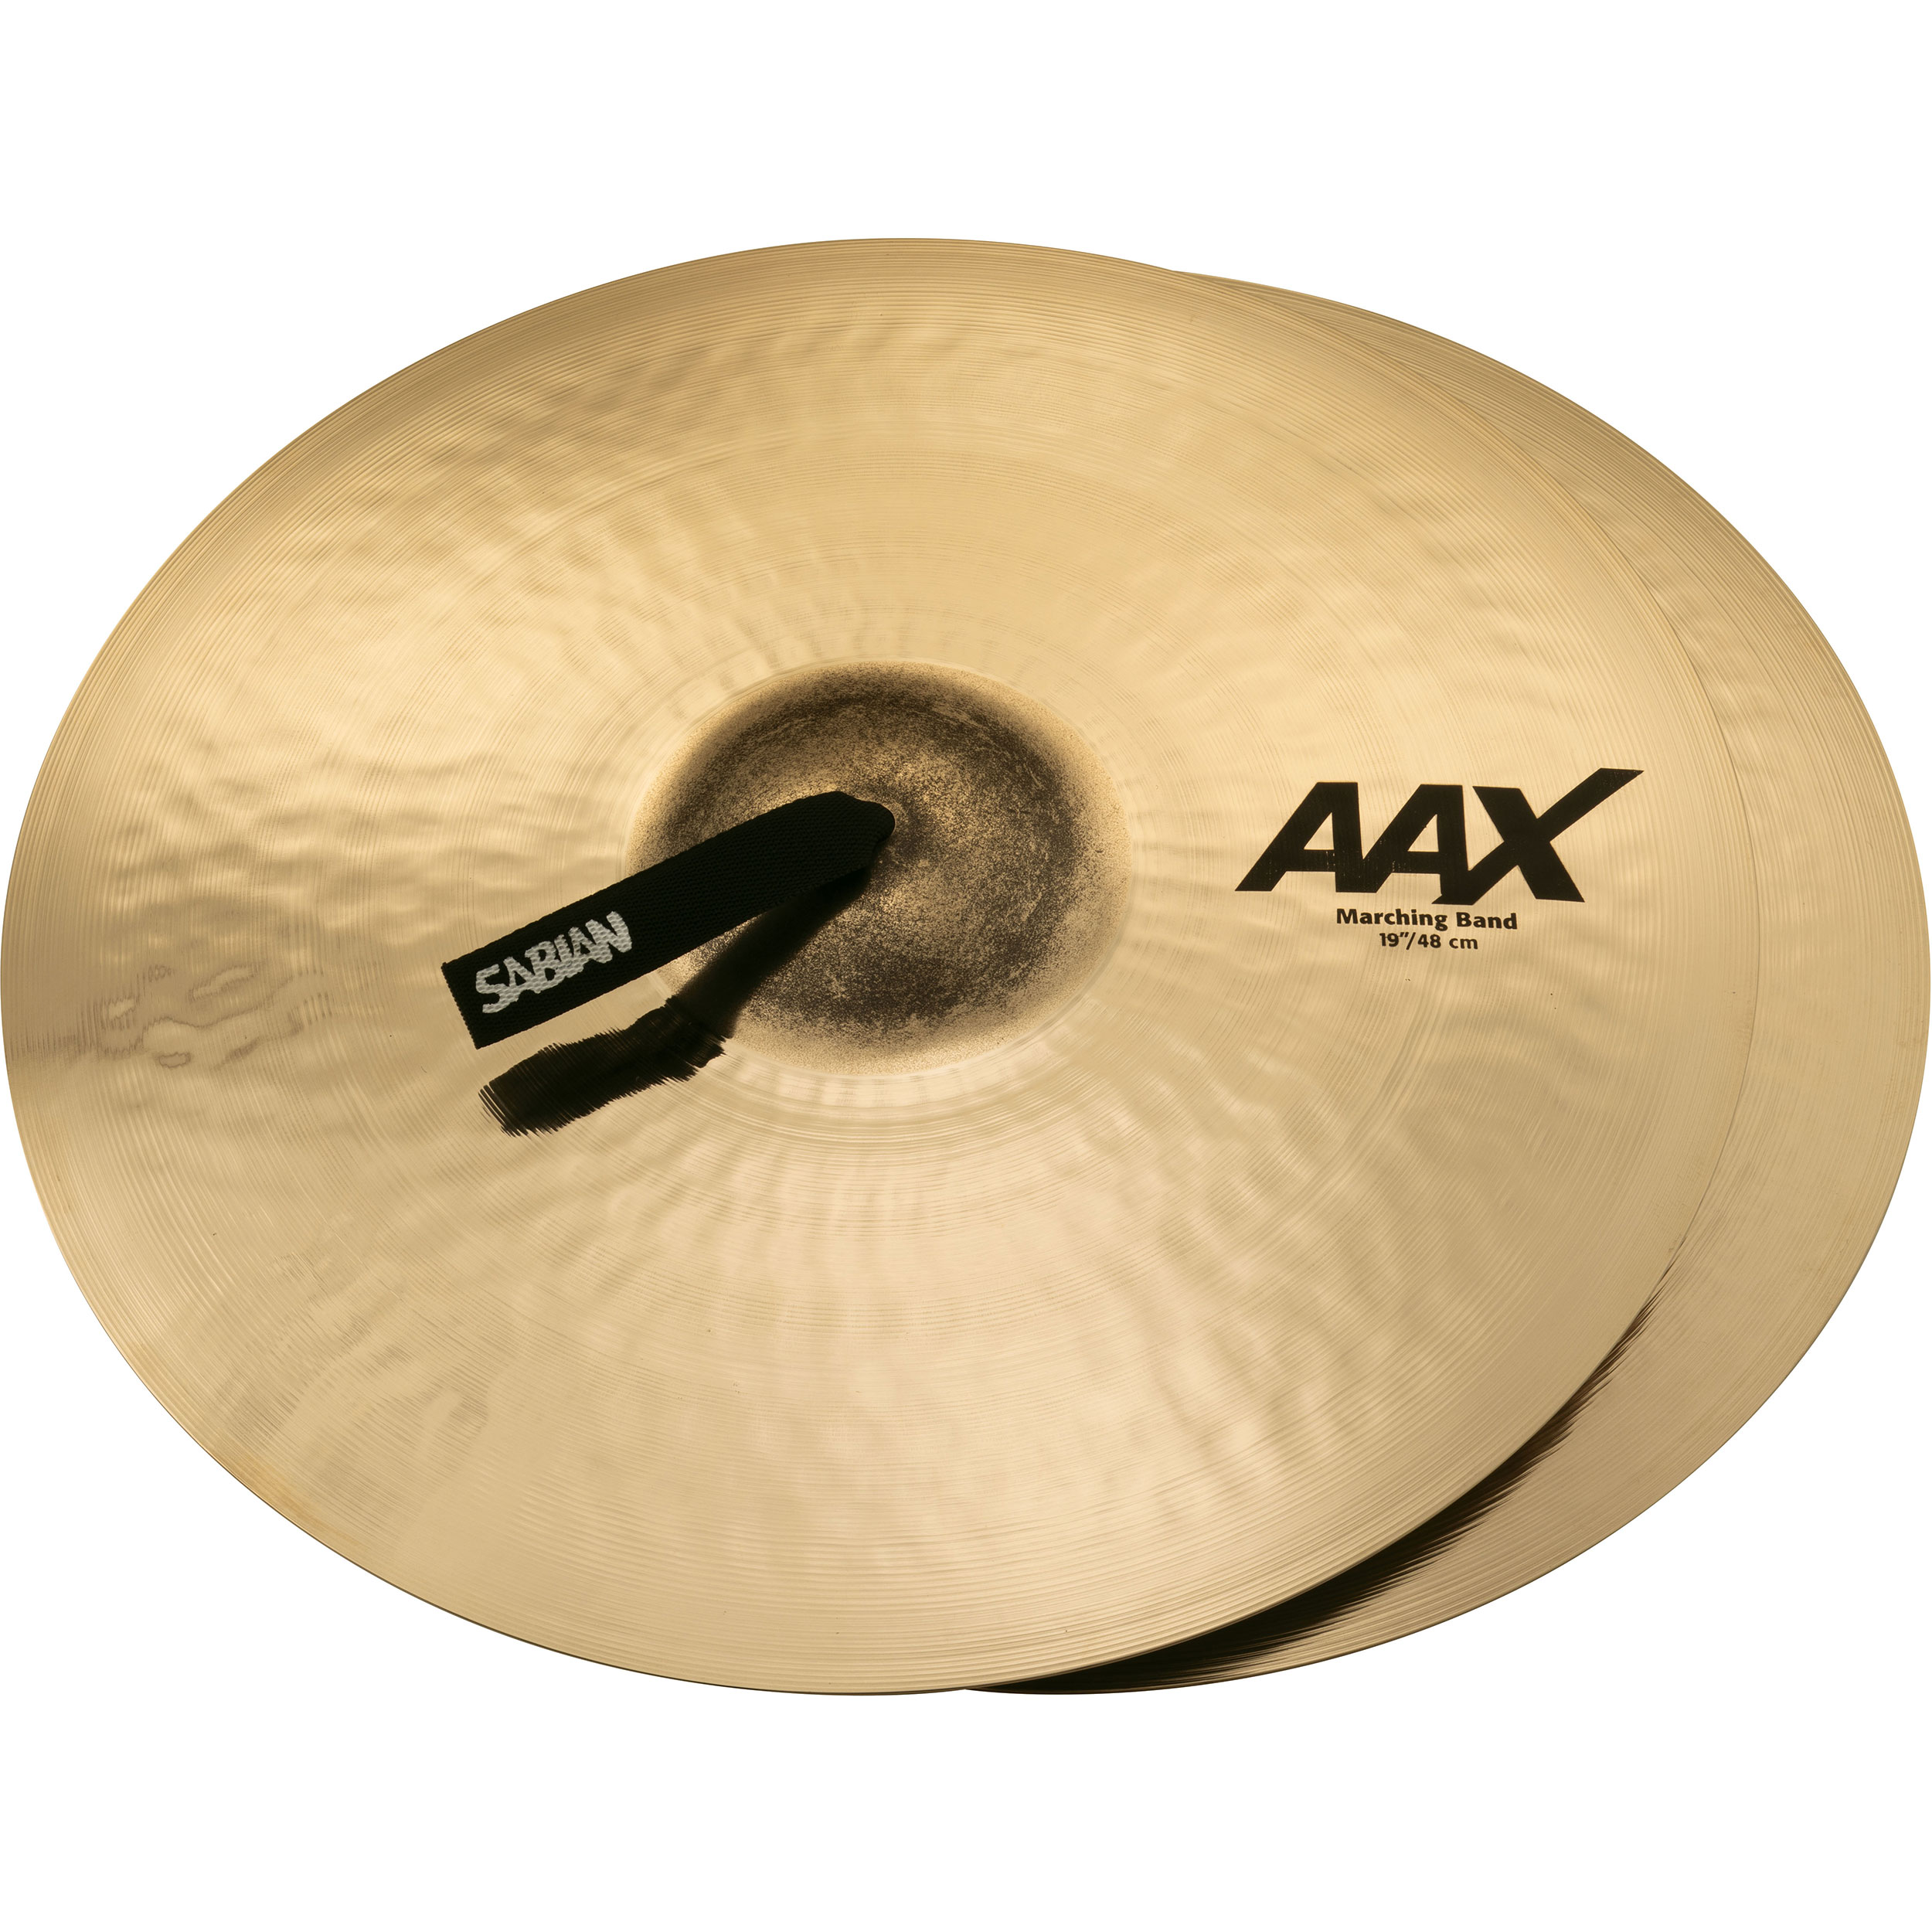 "Sabian 19"" AAX Marching Band Crash Cymbal Pair"